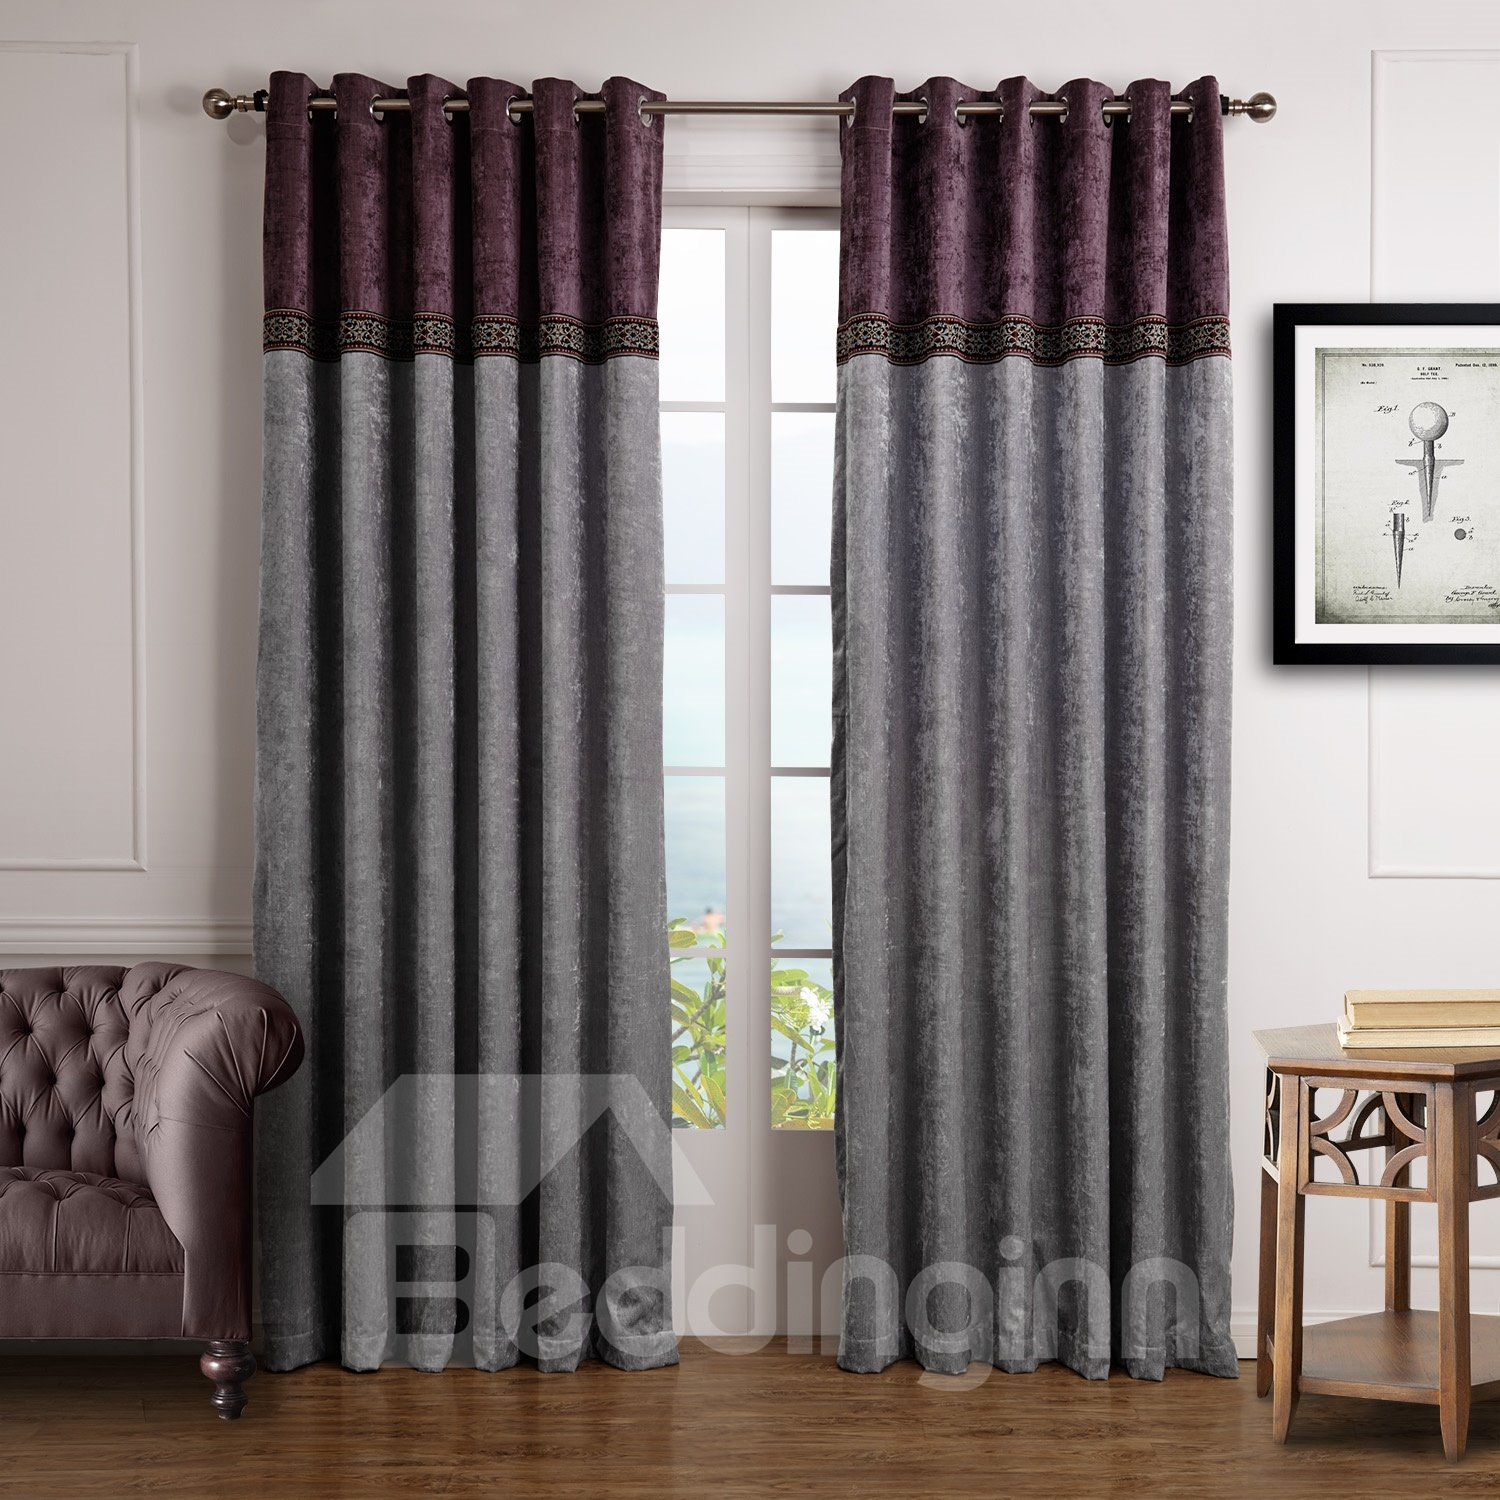 Fancy Joint Color Decorative Border Design Custom Curtain